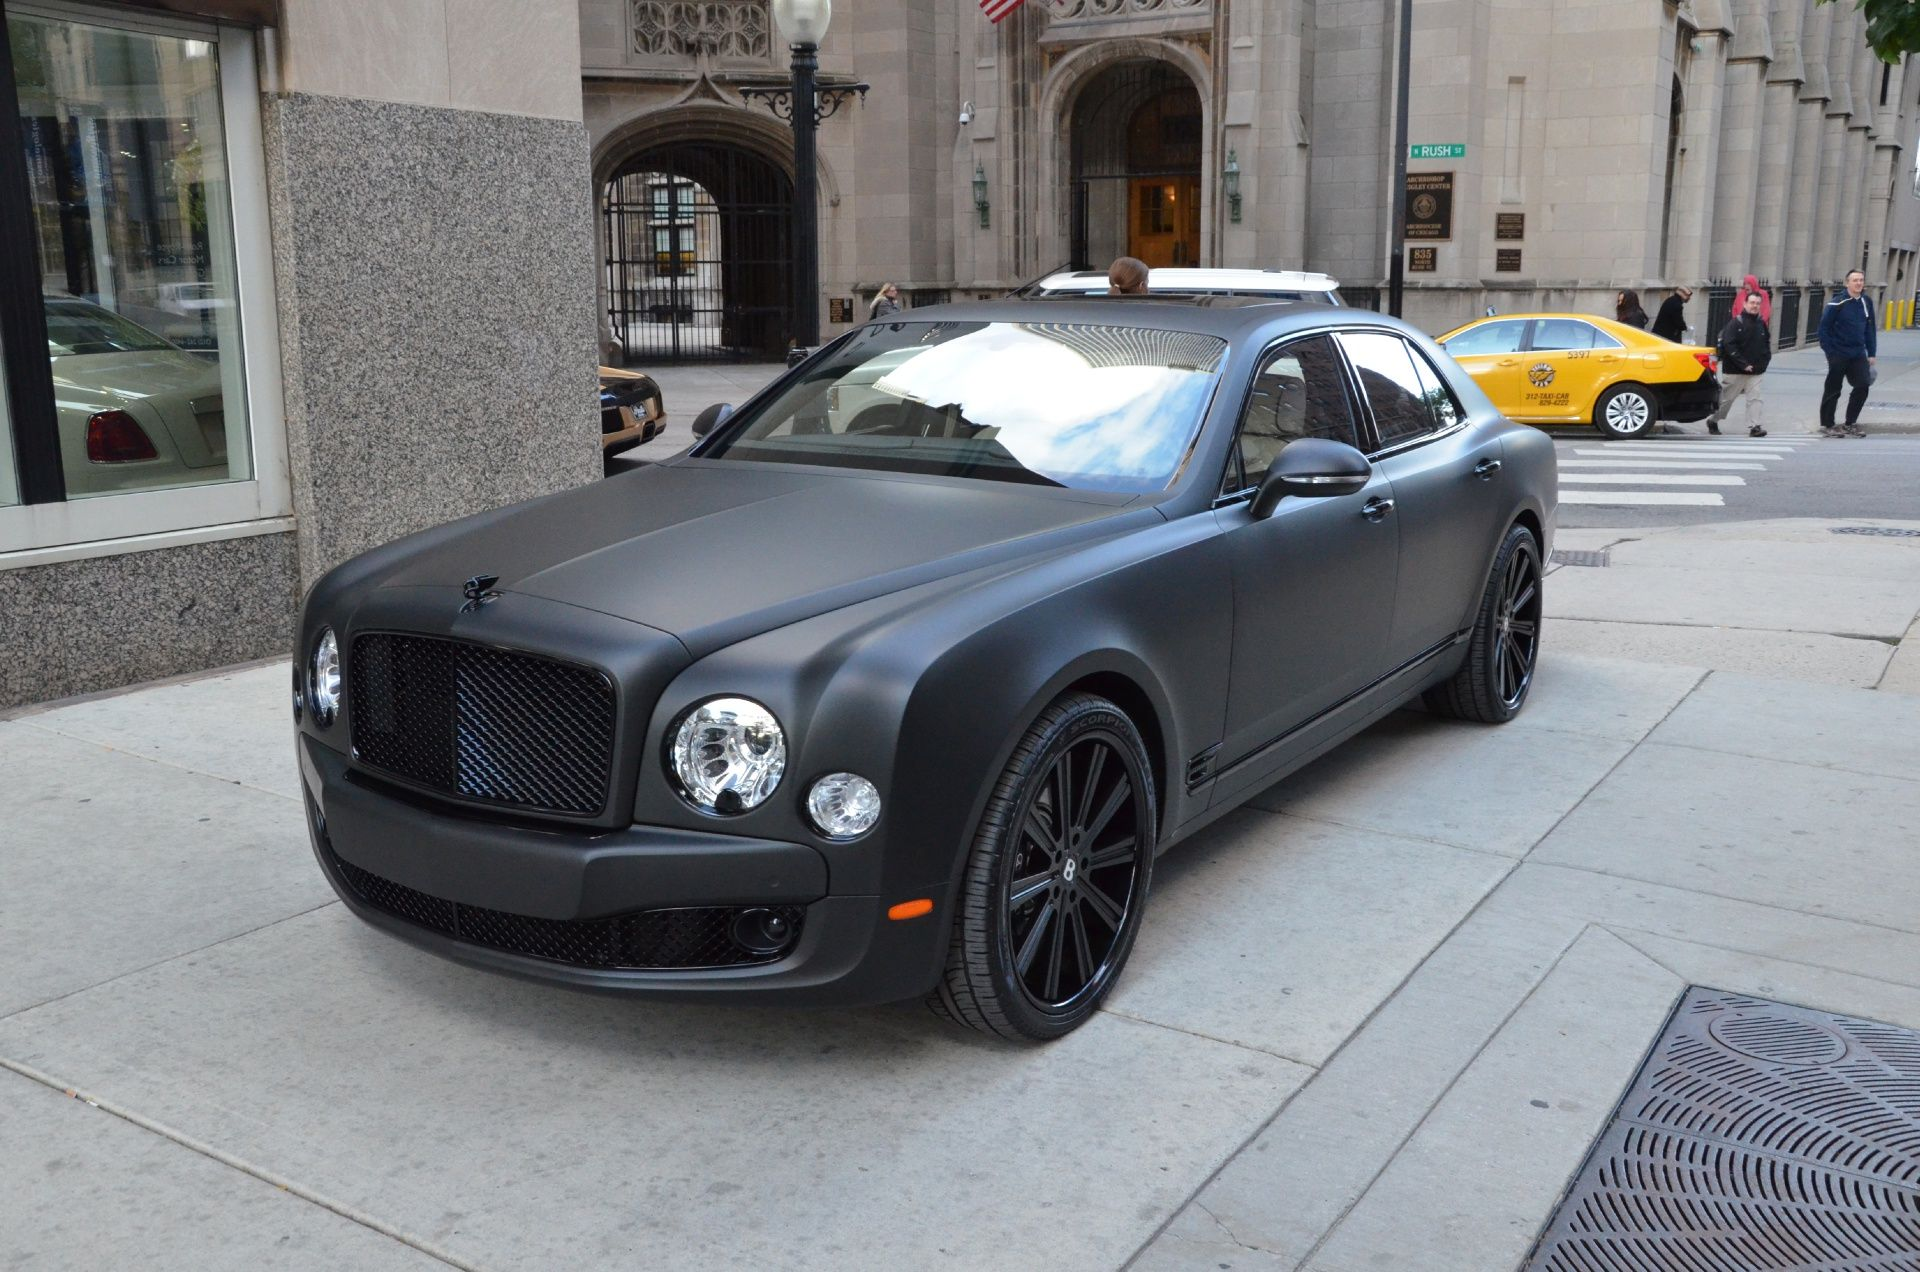 Bentley Gold Coast Is A Luxury Motor Car Dealer Located In